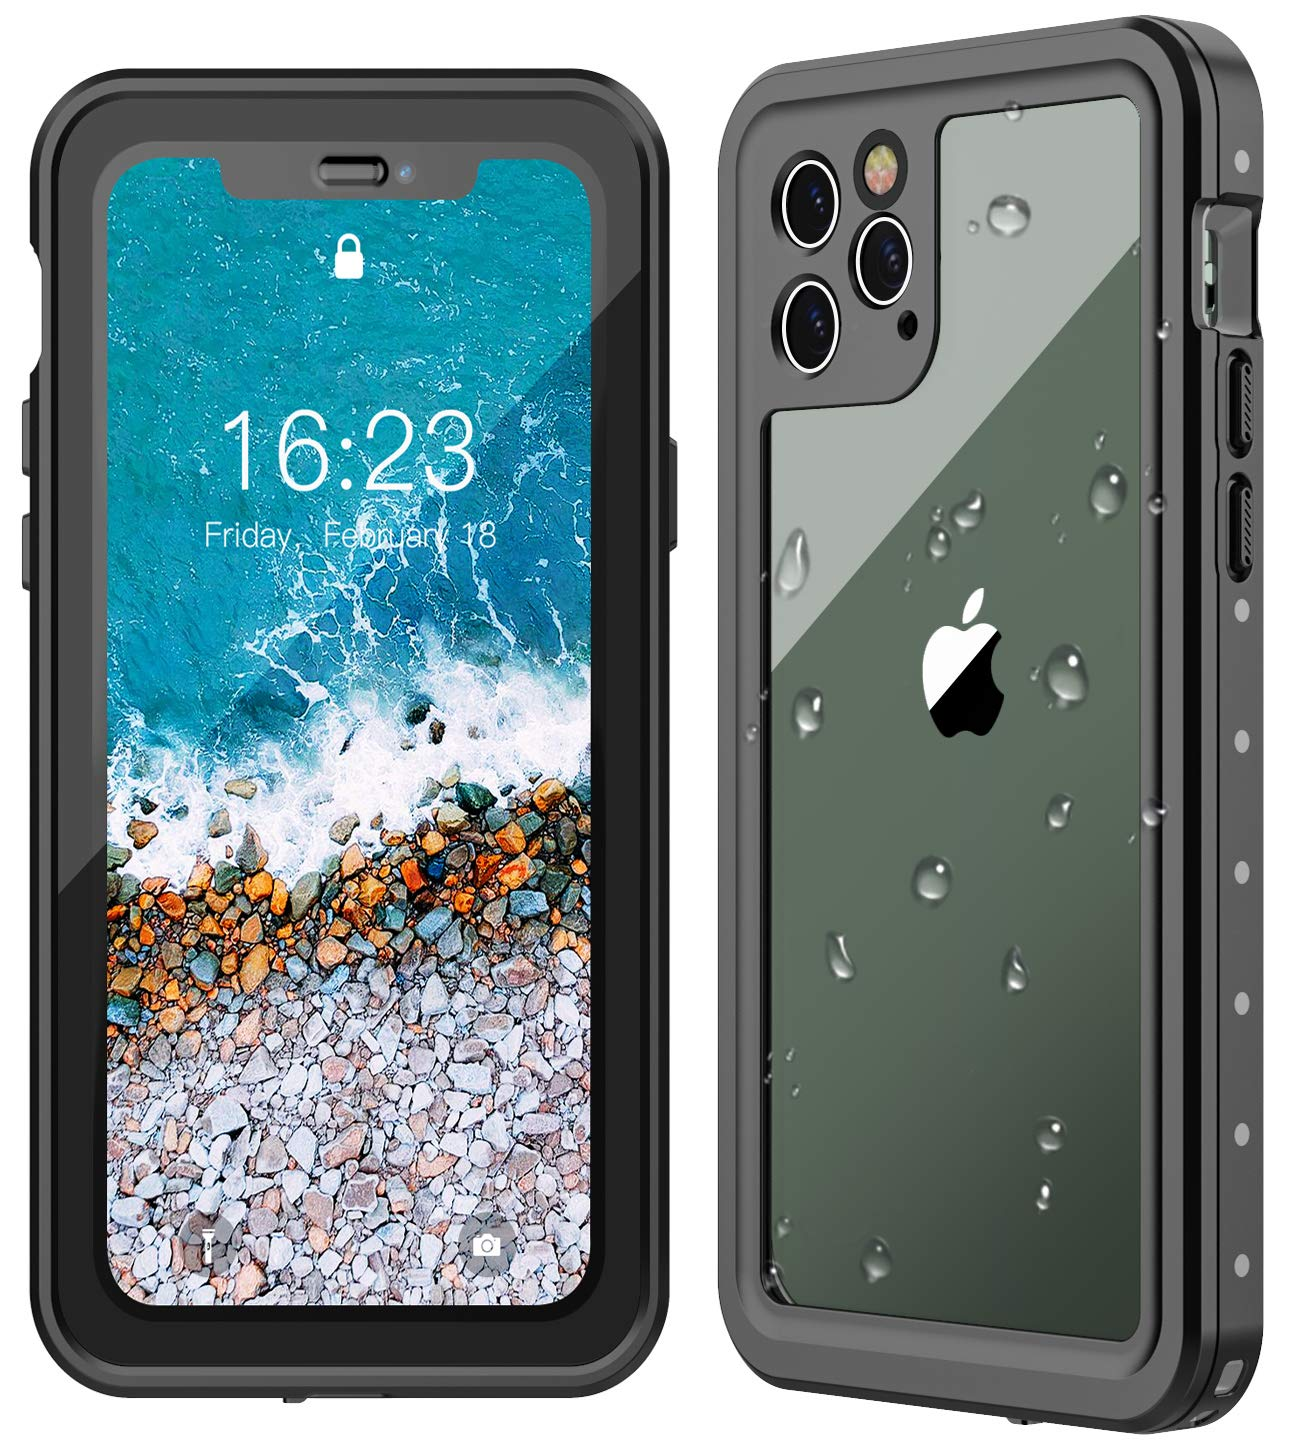 Funda Sumergible Para iPhone 11 Pro Max (6.5) Oterkin